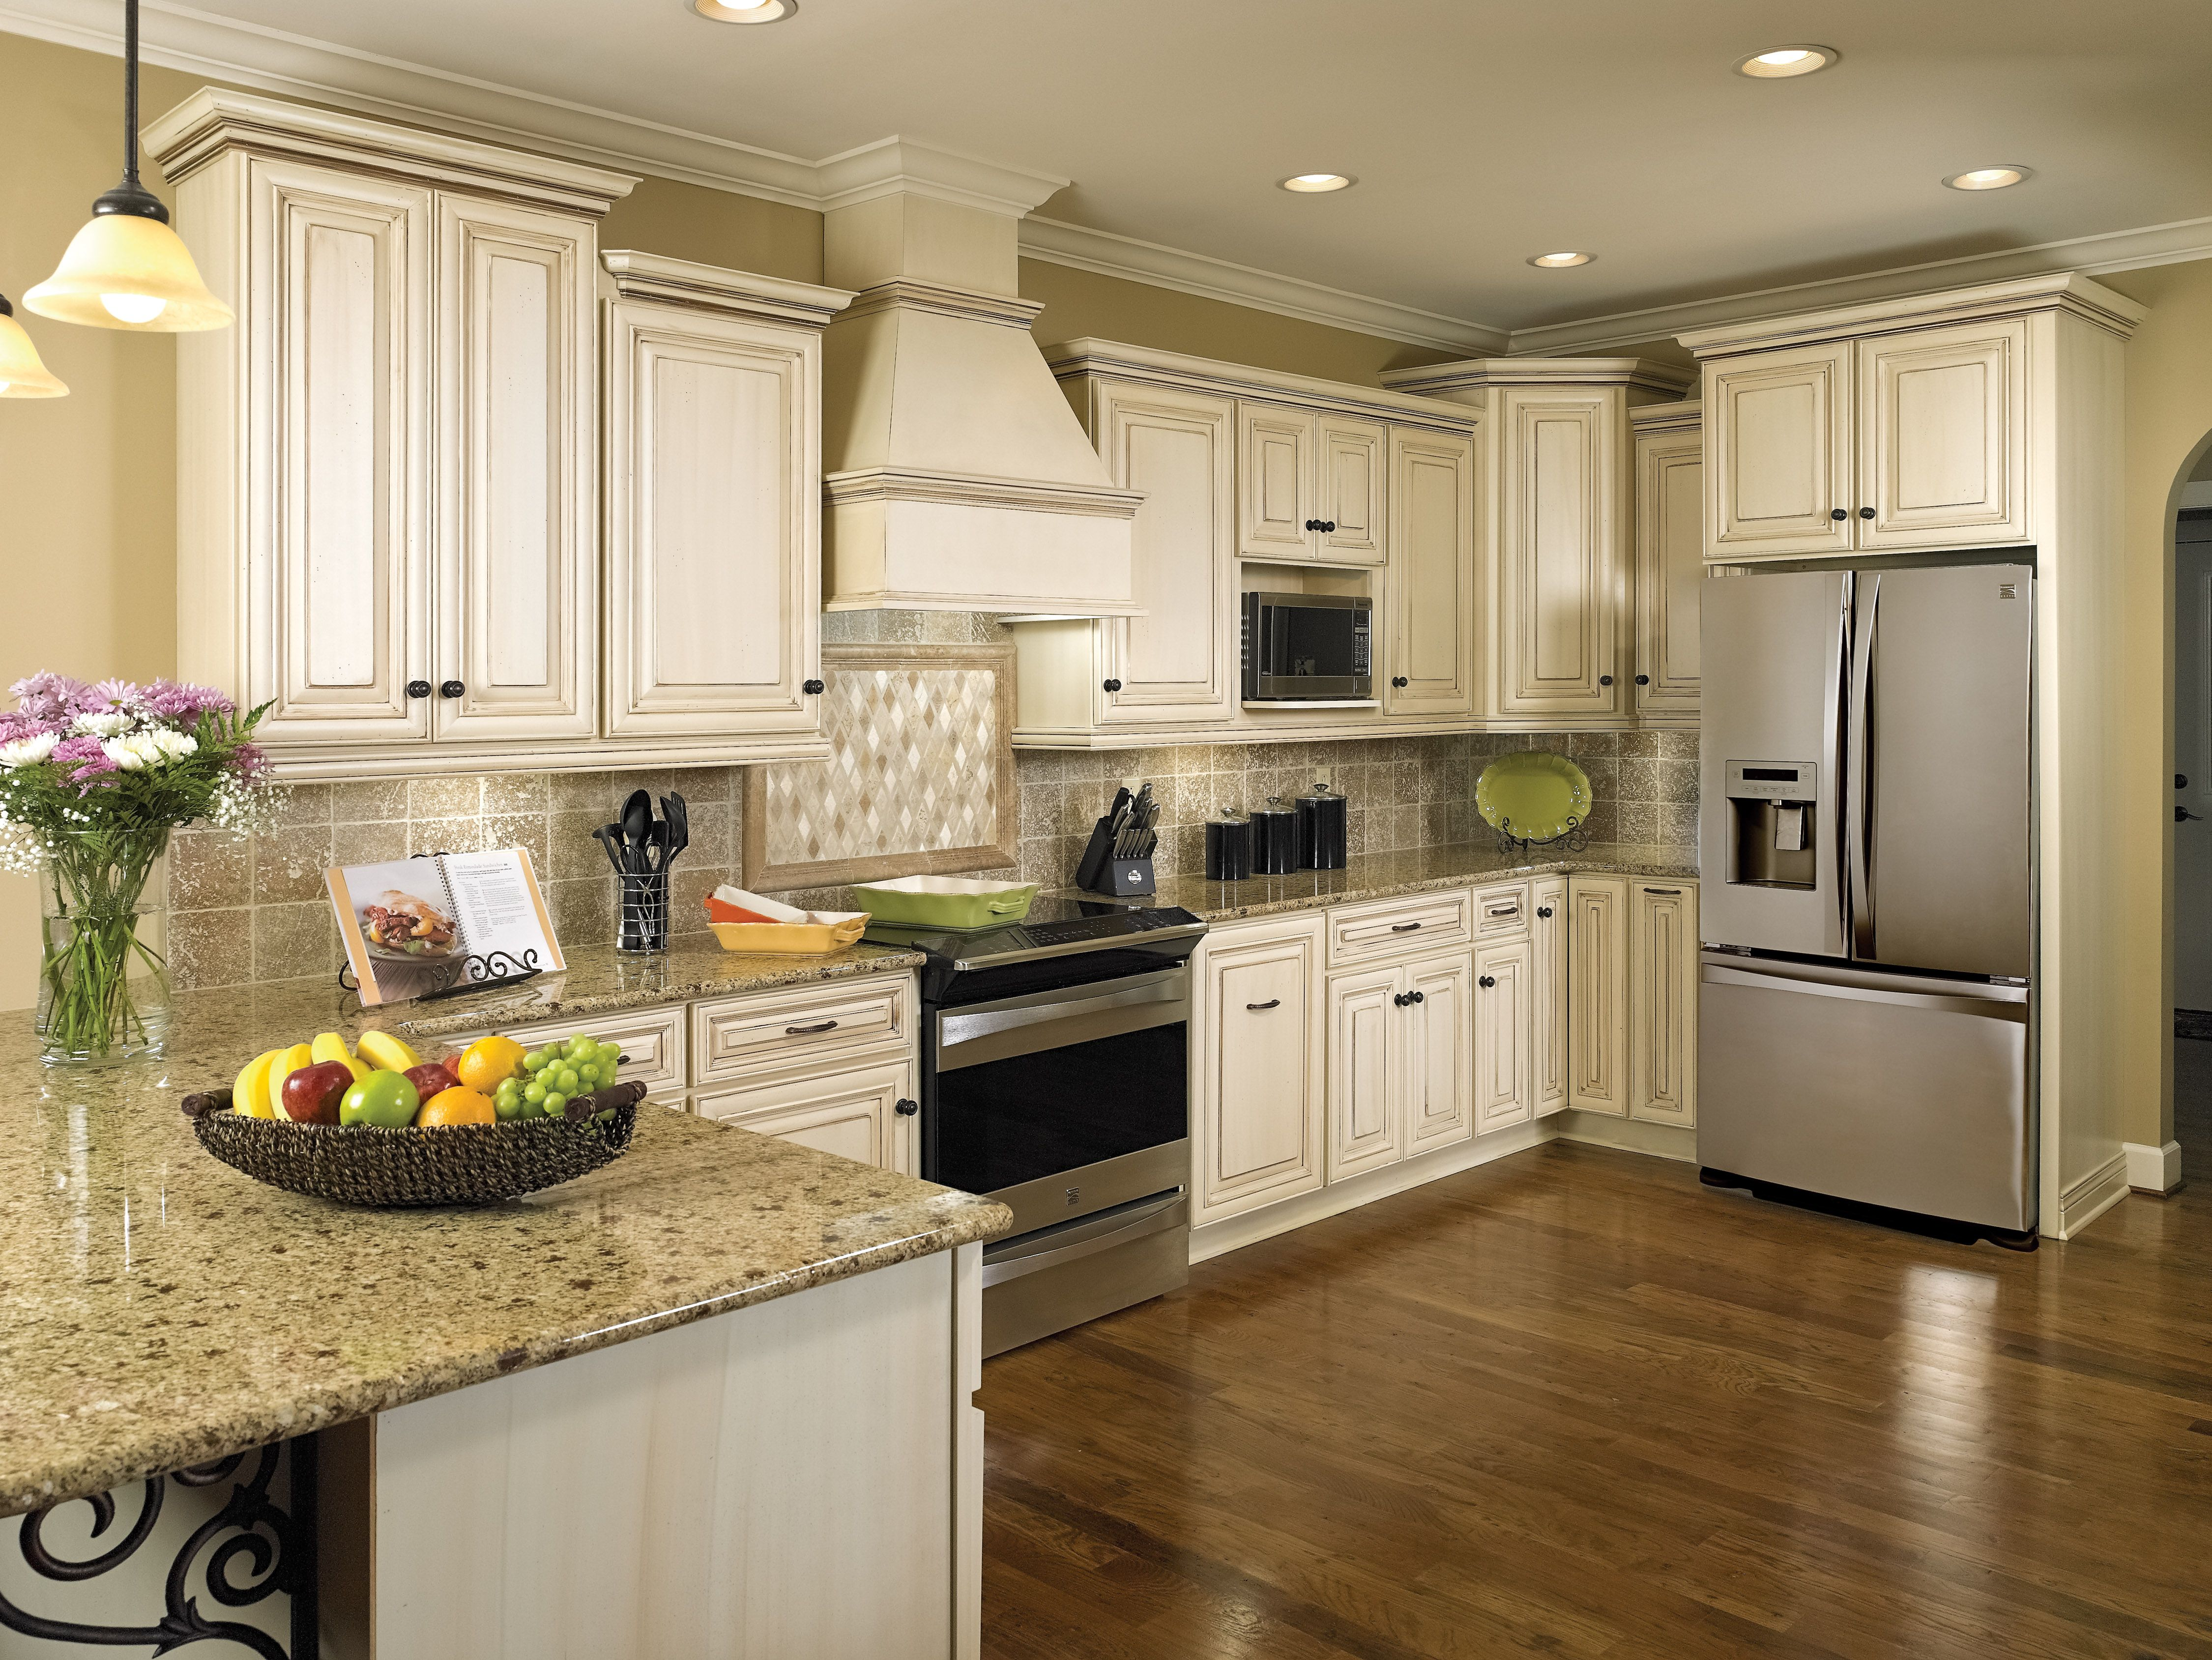 Classy White Kitchen By Master S Men Remodeling In Columbia Sc Kitchen Gallery Kitchen Granite Countertop Designs